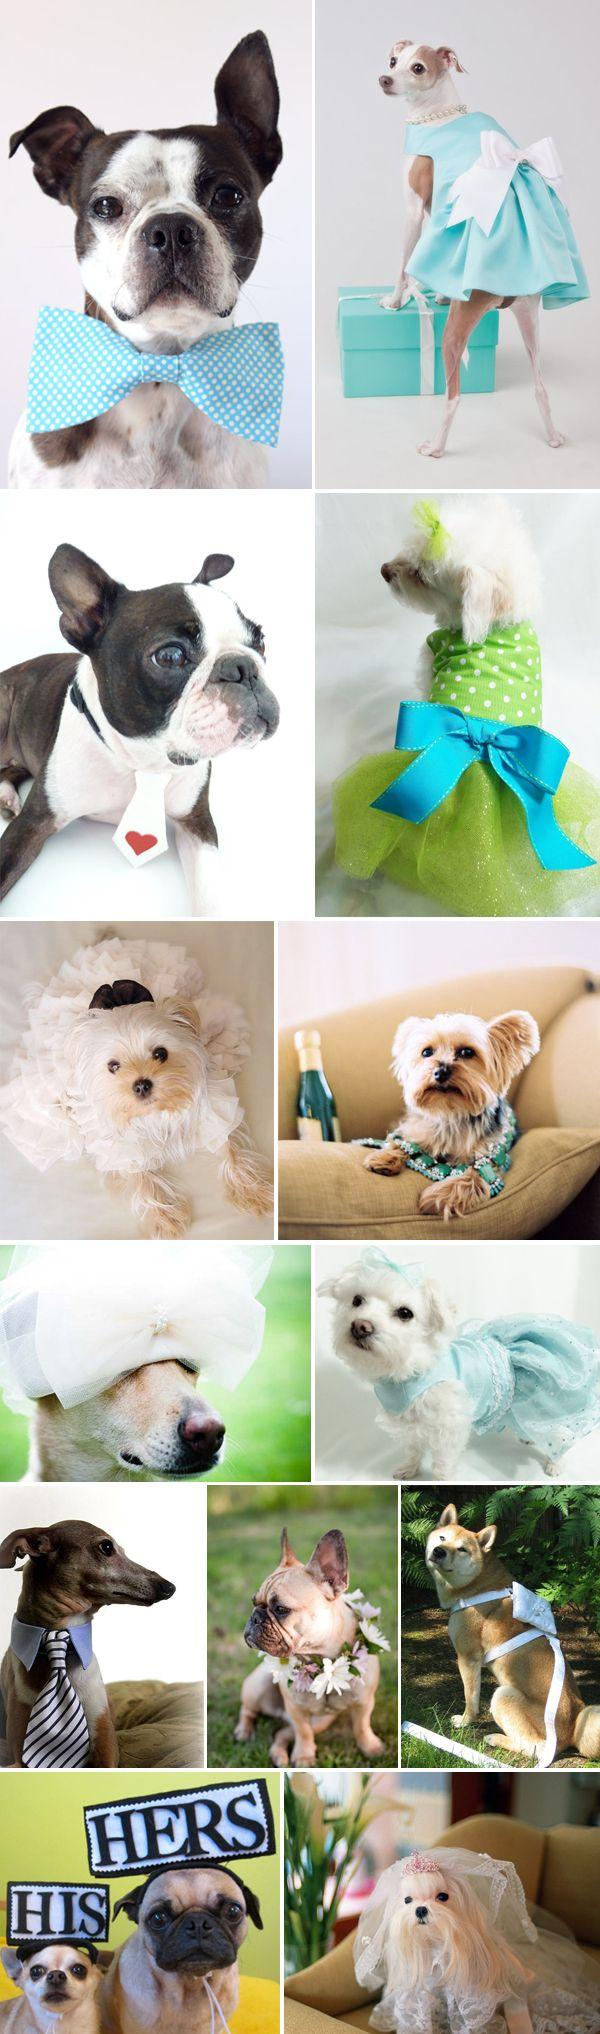 Düğün - Super Cute! Wedding Dogs